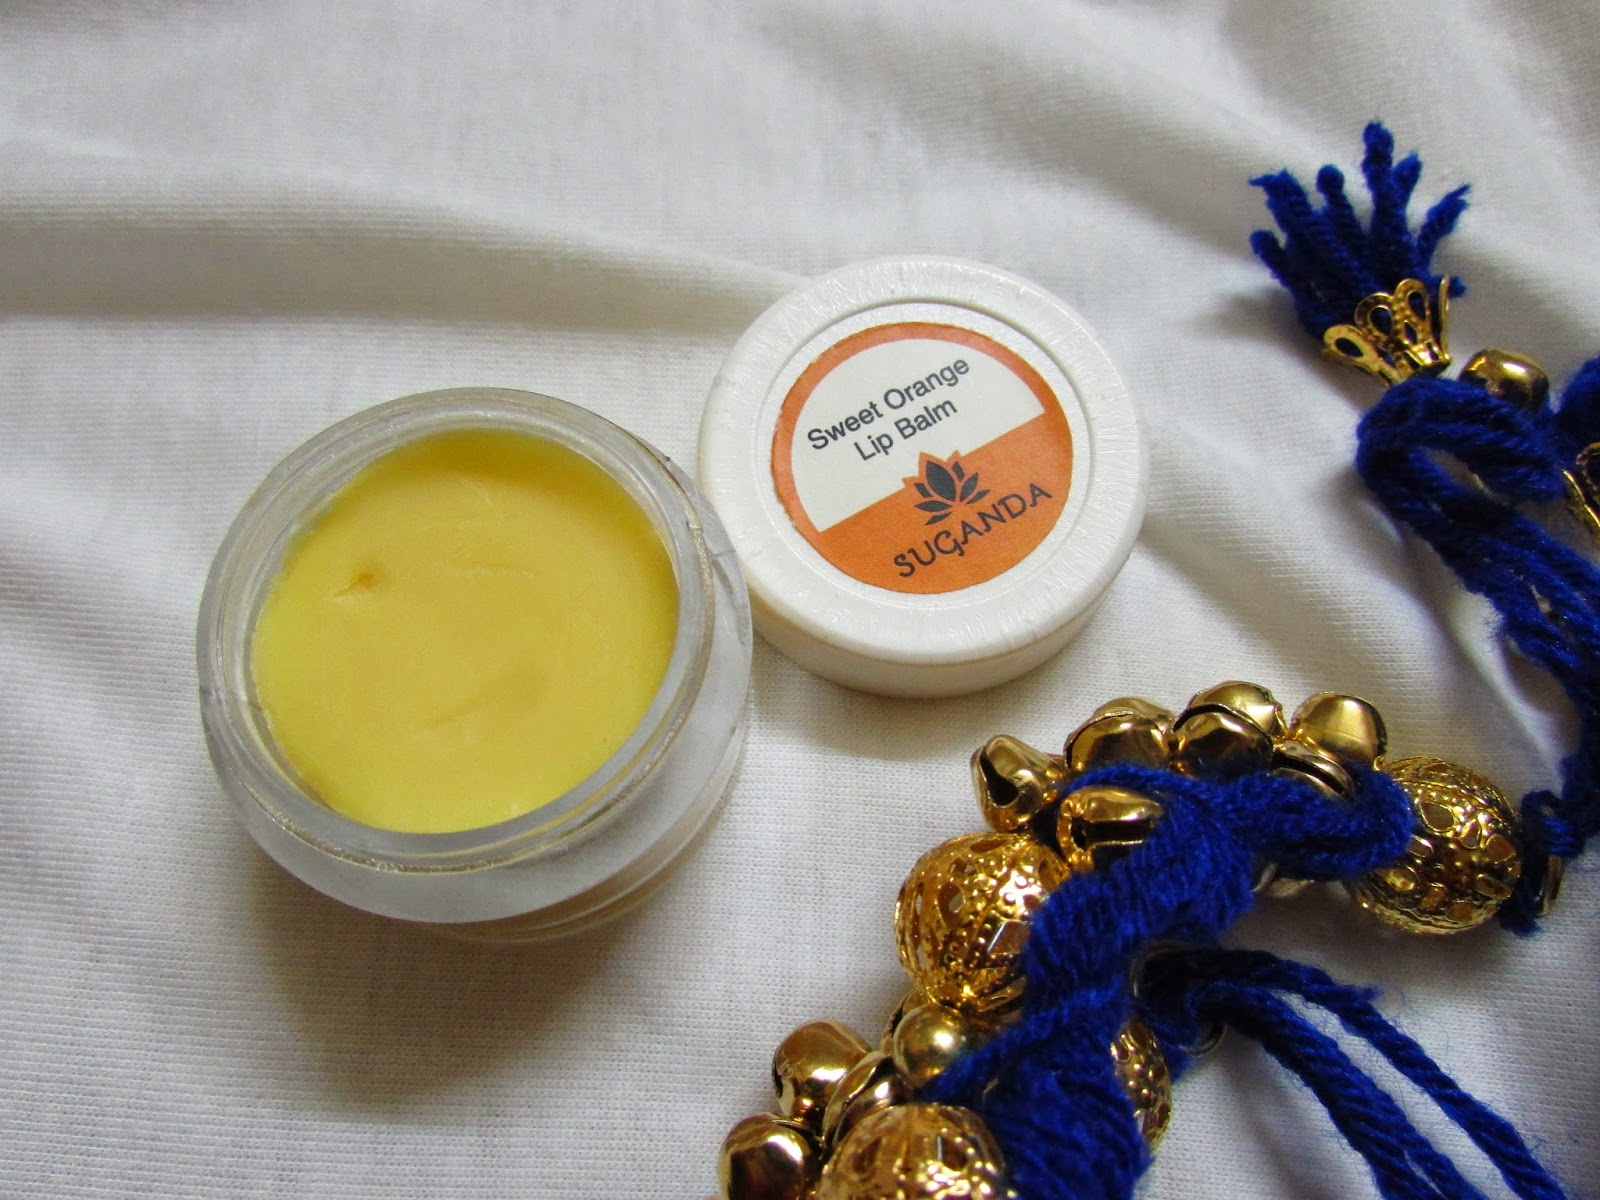 Best Lip Balm For Summers,Suganda Lip Balm in Sweet Orange, handmade lip balm, organic chemical free lip balm, suganda lip balm price review india, paraben free lip balm,best lip balm india,beauty , fashion,beauty and fashion,beauty blog, fashion blog , indian beauty blog,indian fashion blog, beauty and fashion blog, indian beauty and fashion blog, indian bloggers, indian beauty bloggers, indian fashion bloggers,indian bloggers online, top 10 indian bloggers, top indian bloggers,top 10 fashion bloggers, indian bloggers on blogspot,home remedies, how to